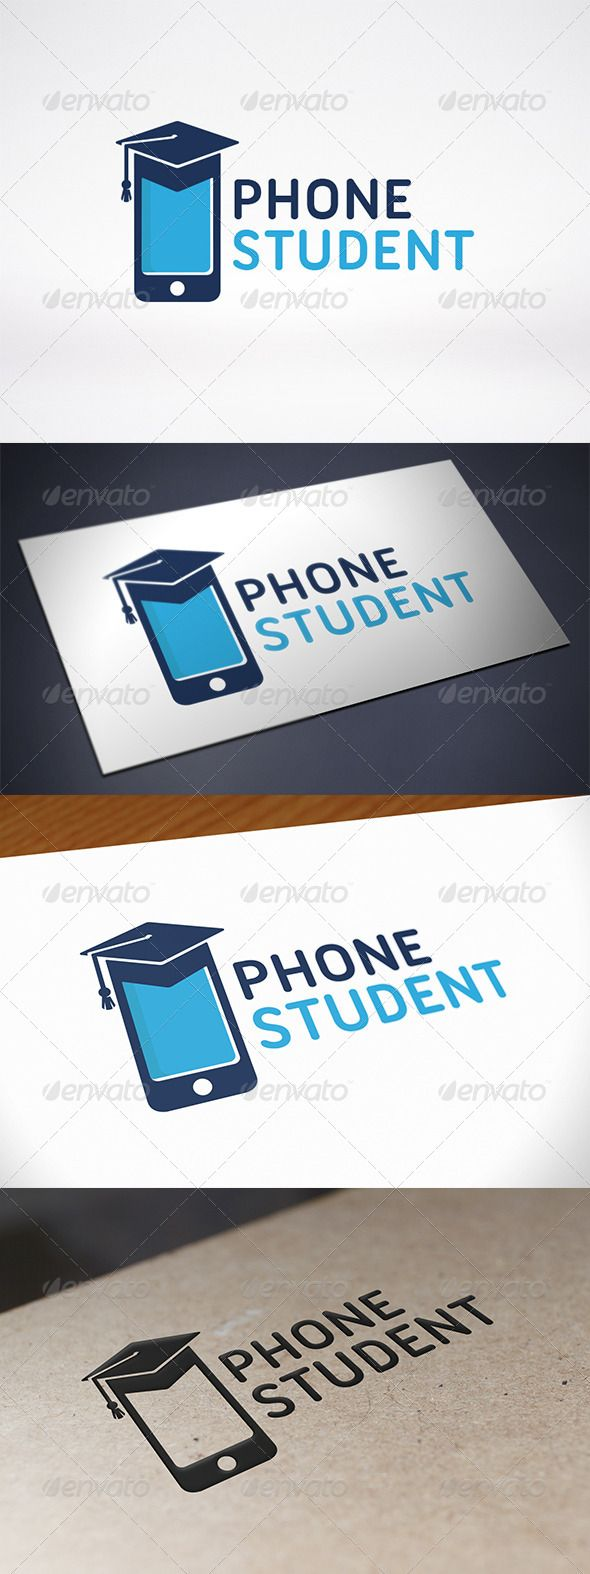 Phone Education Logo — Vector EPS #android #app • Available here → https://graphicriver.net/item/phone-education-logo/7802504?ref=pxcr